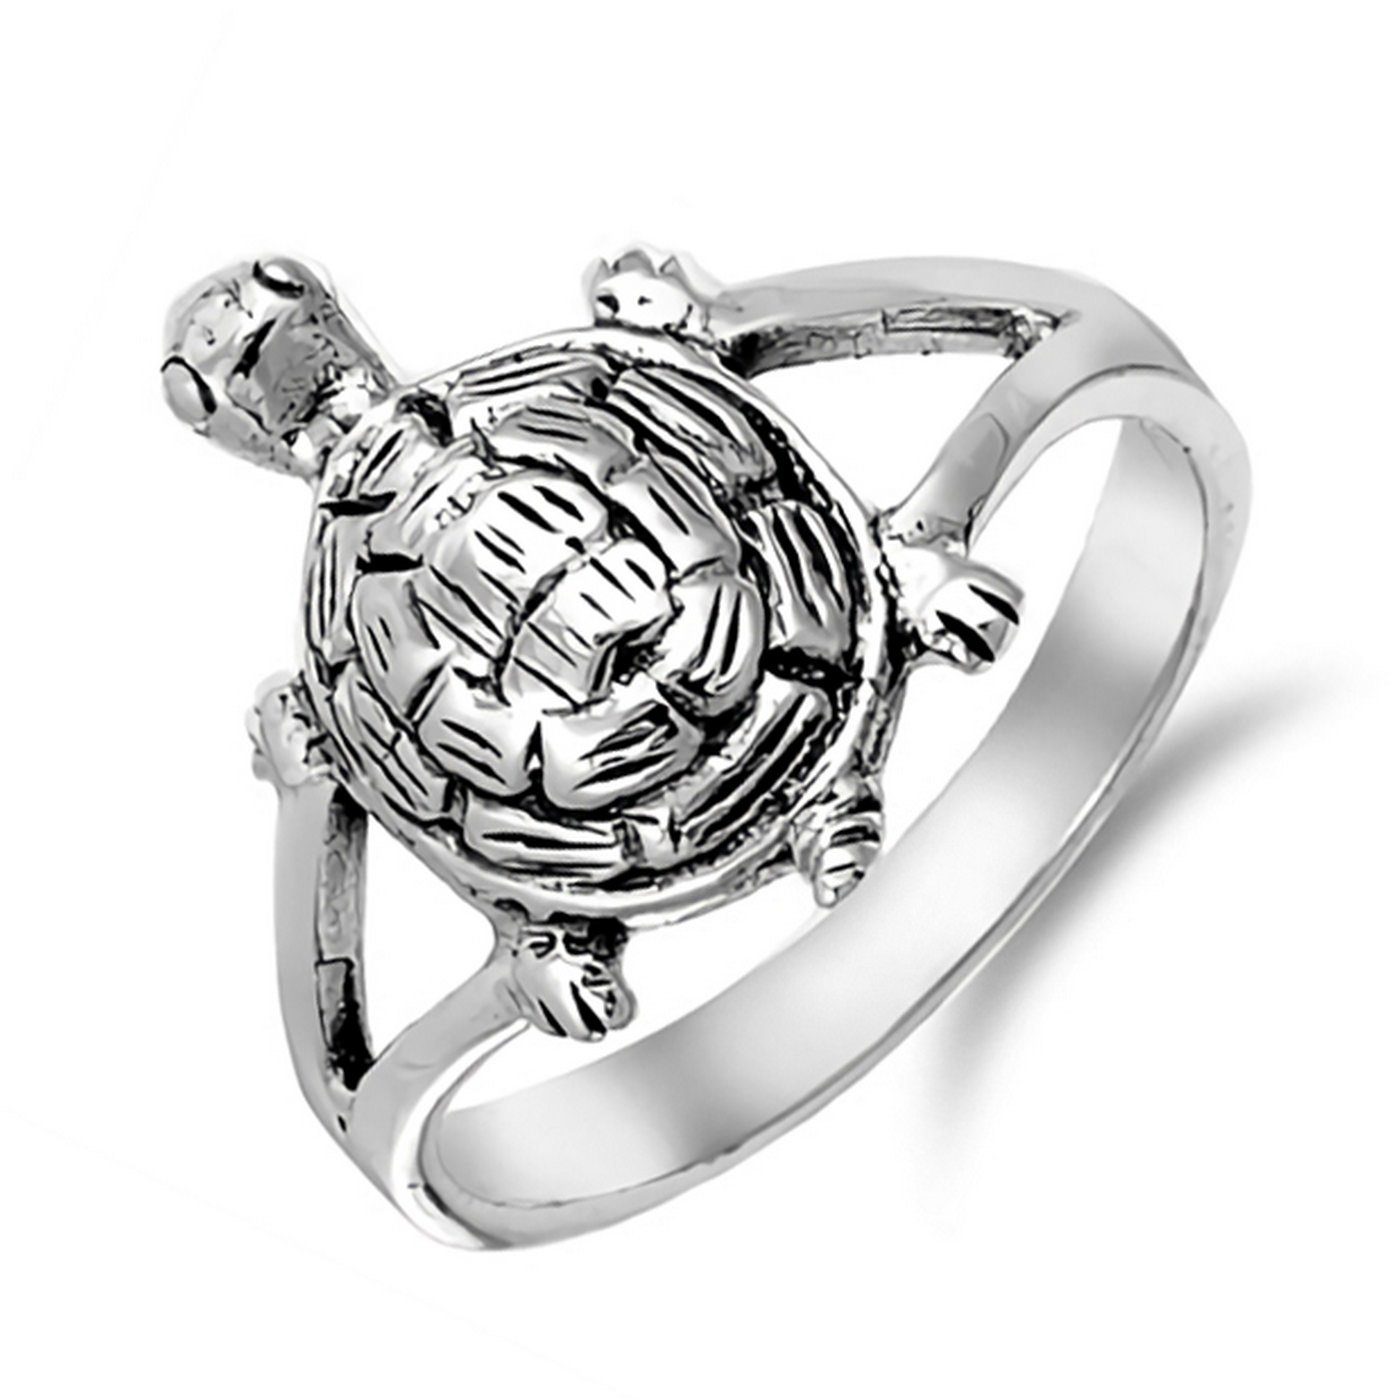 7mm Oxidized Unique Turtle Design Womens Ring 925 Sterling Silver Sizes 4-10